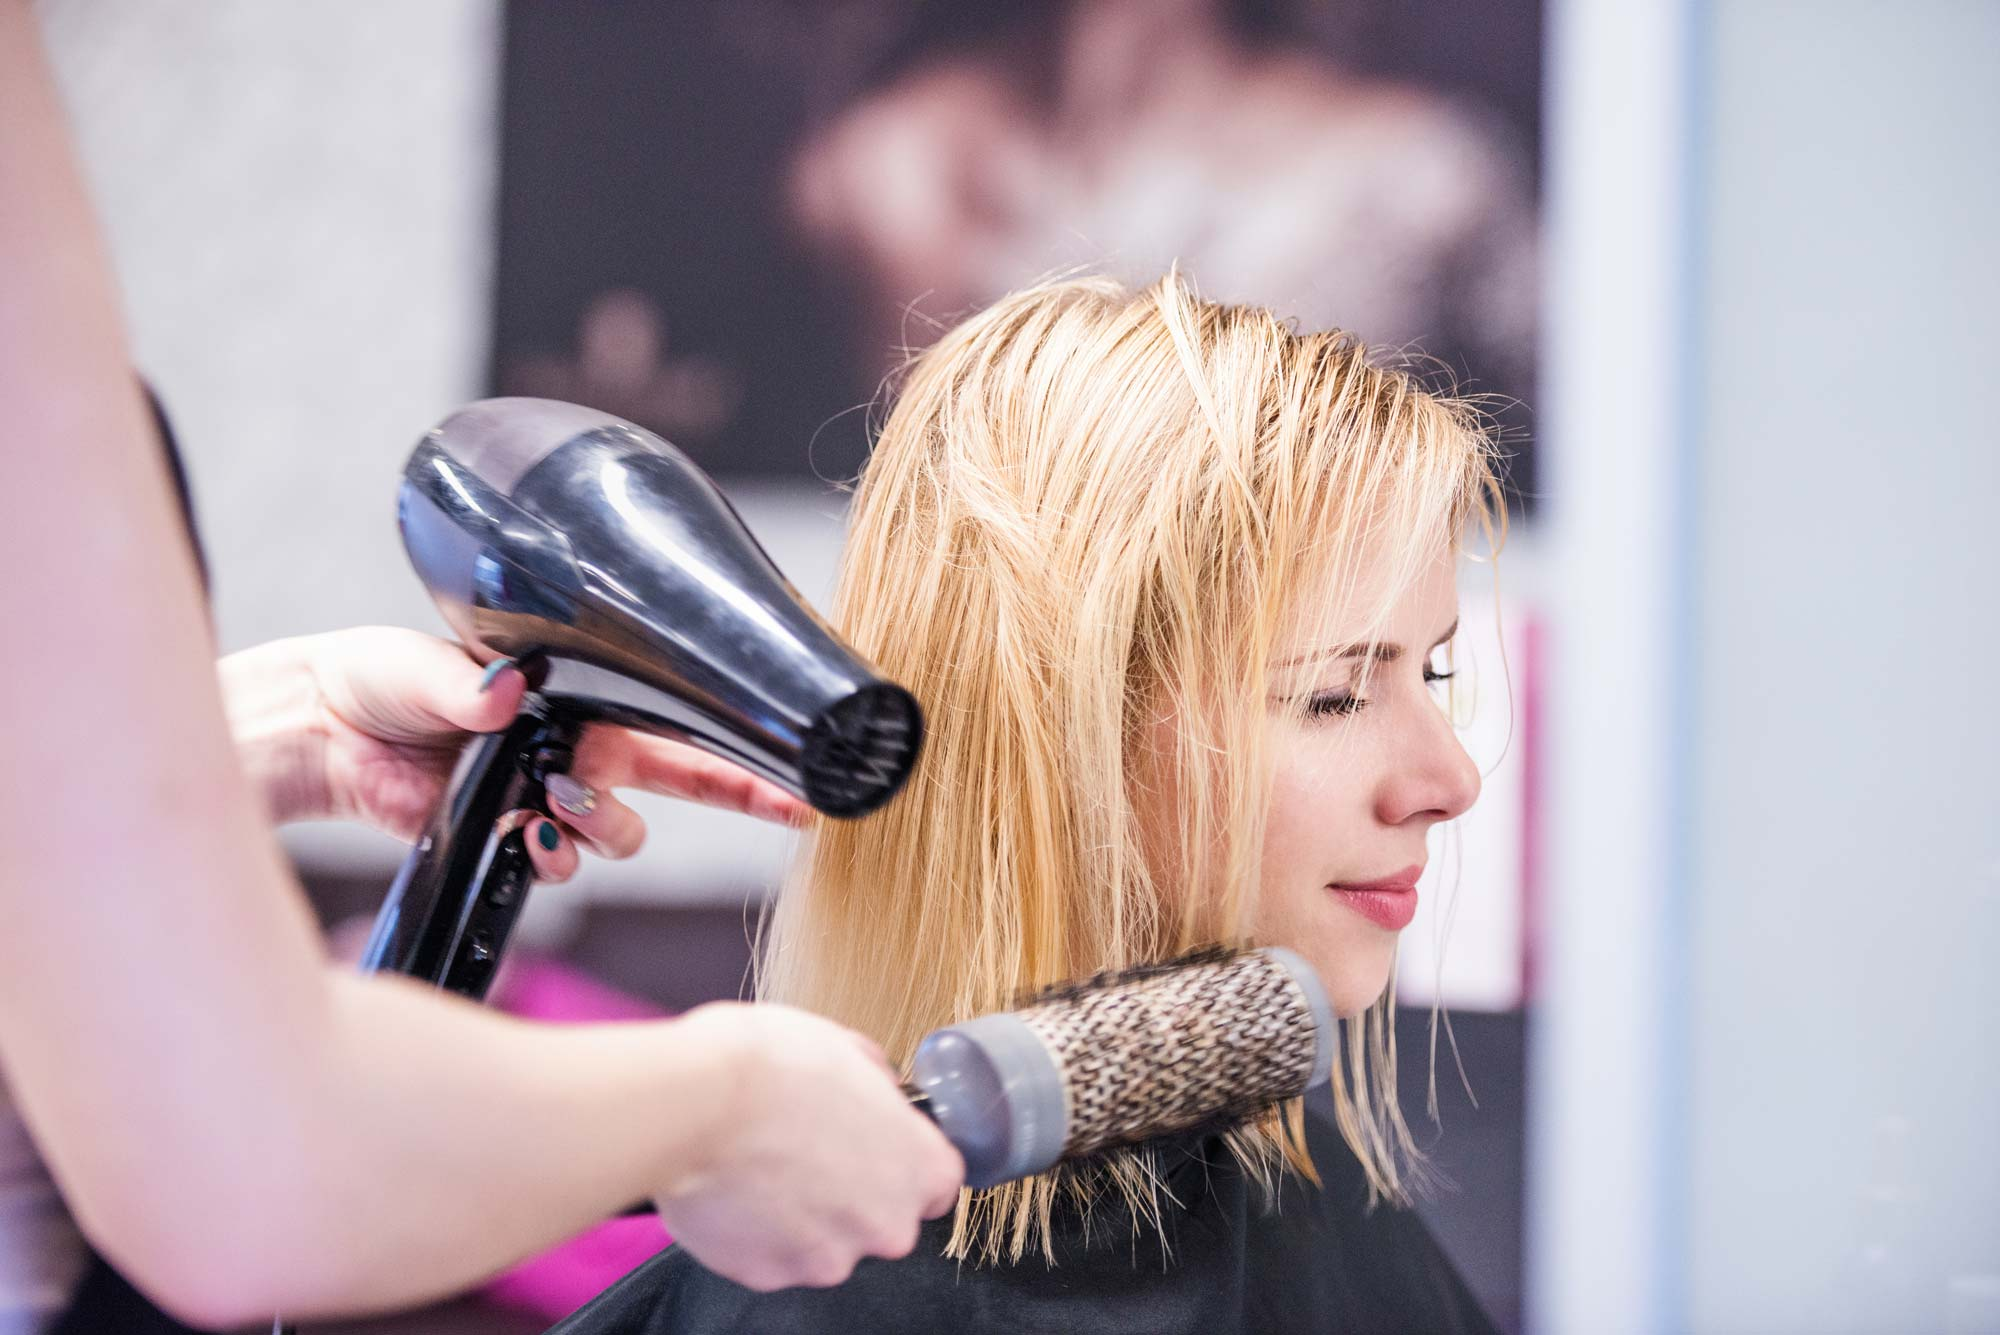 Woman cutting blond girl's hair